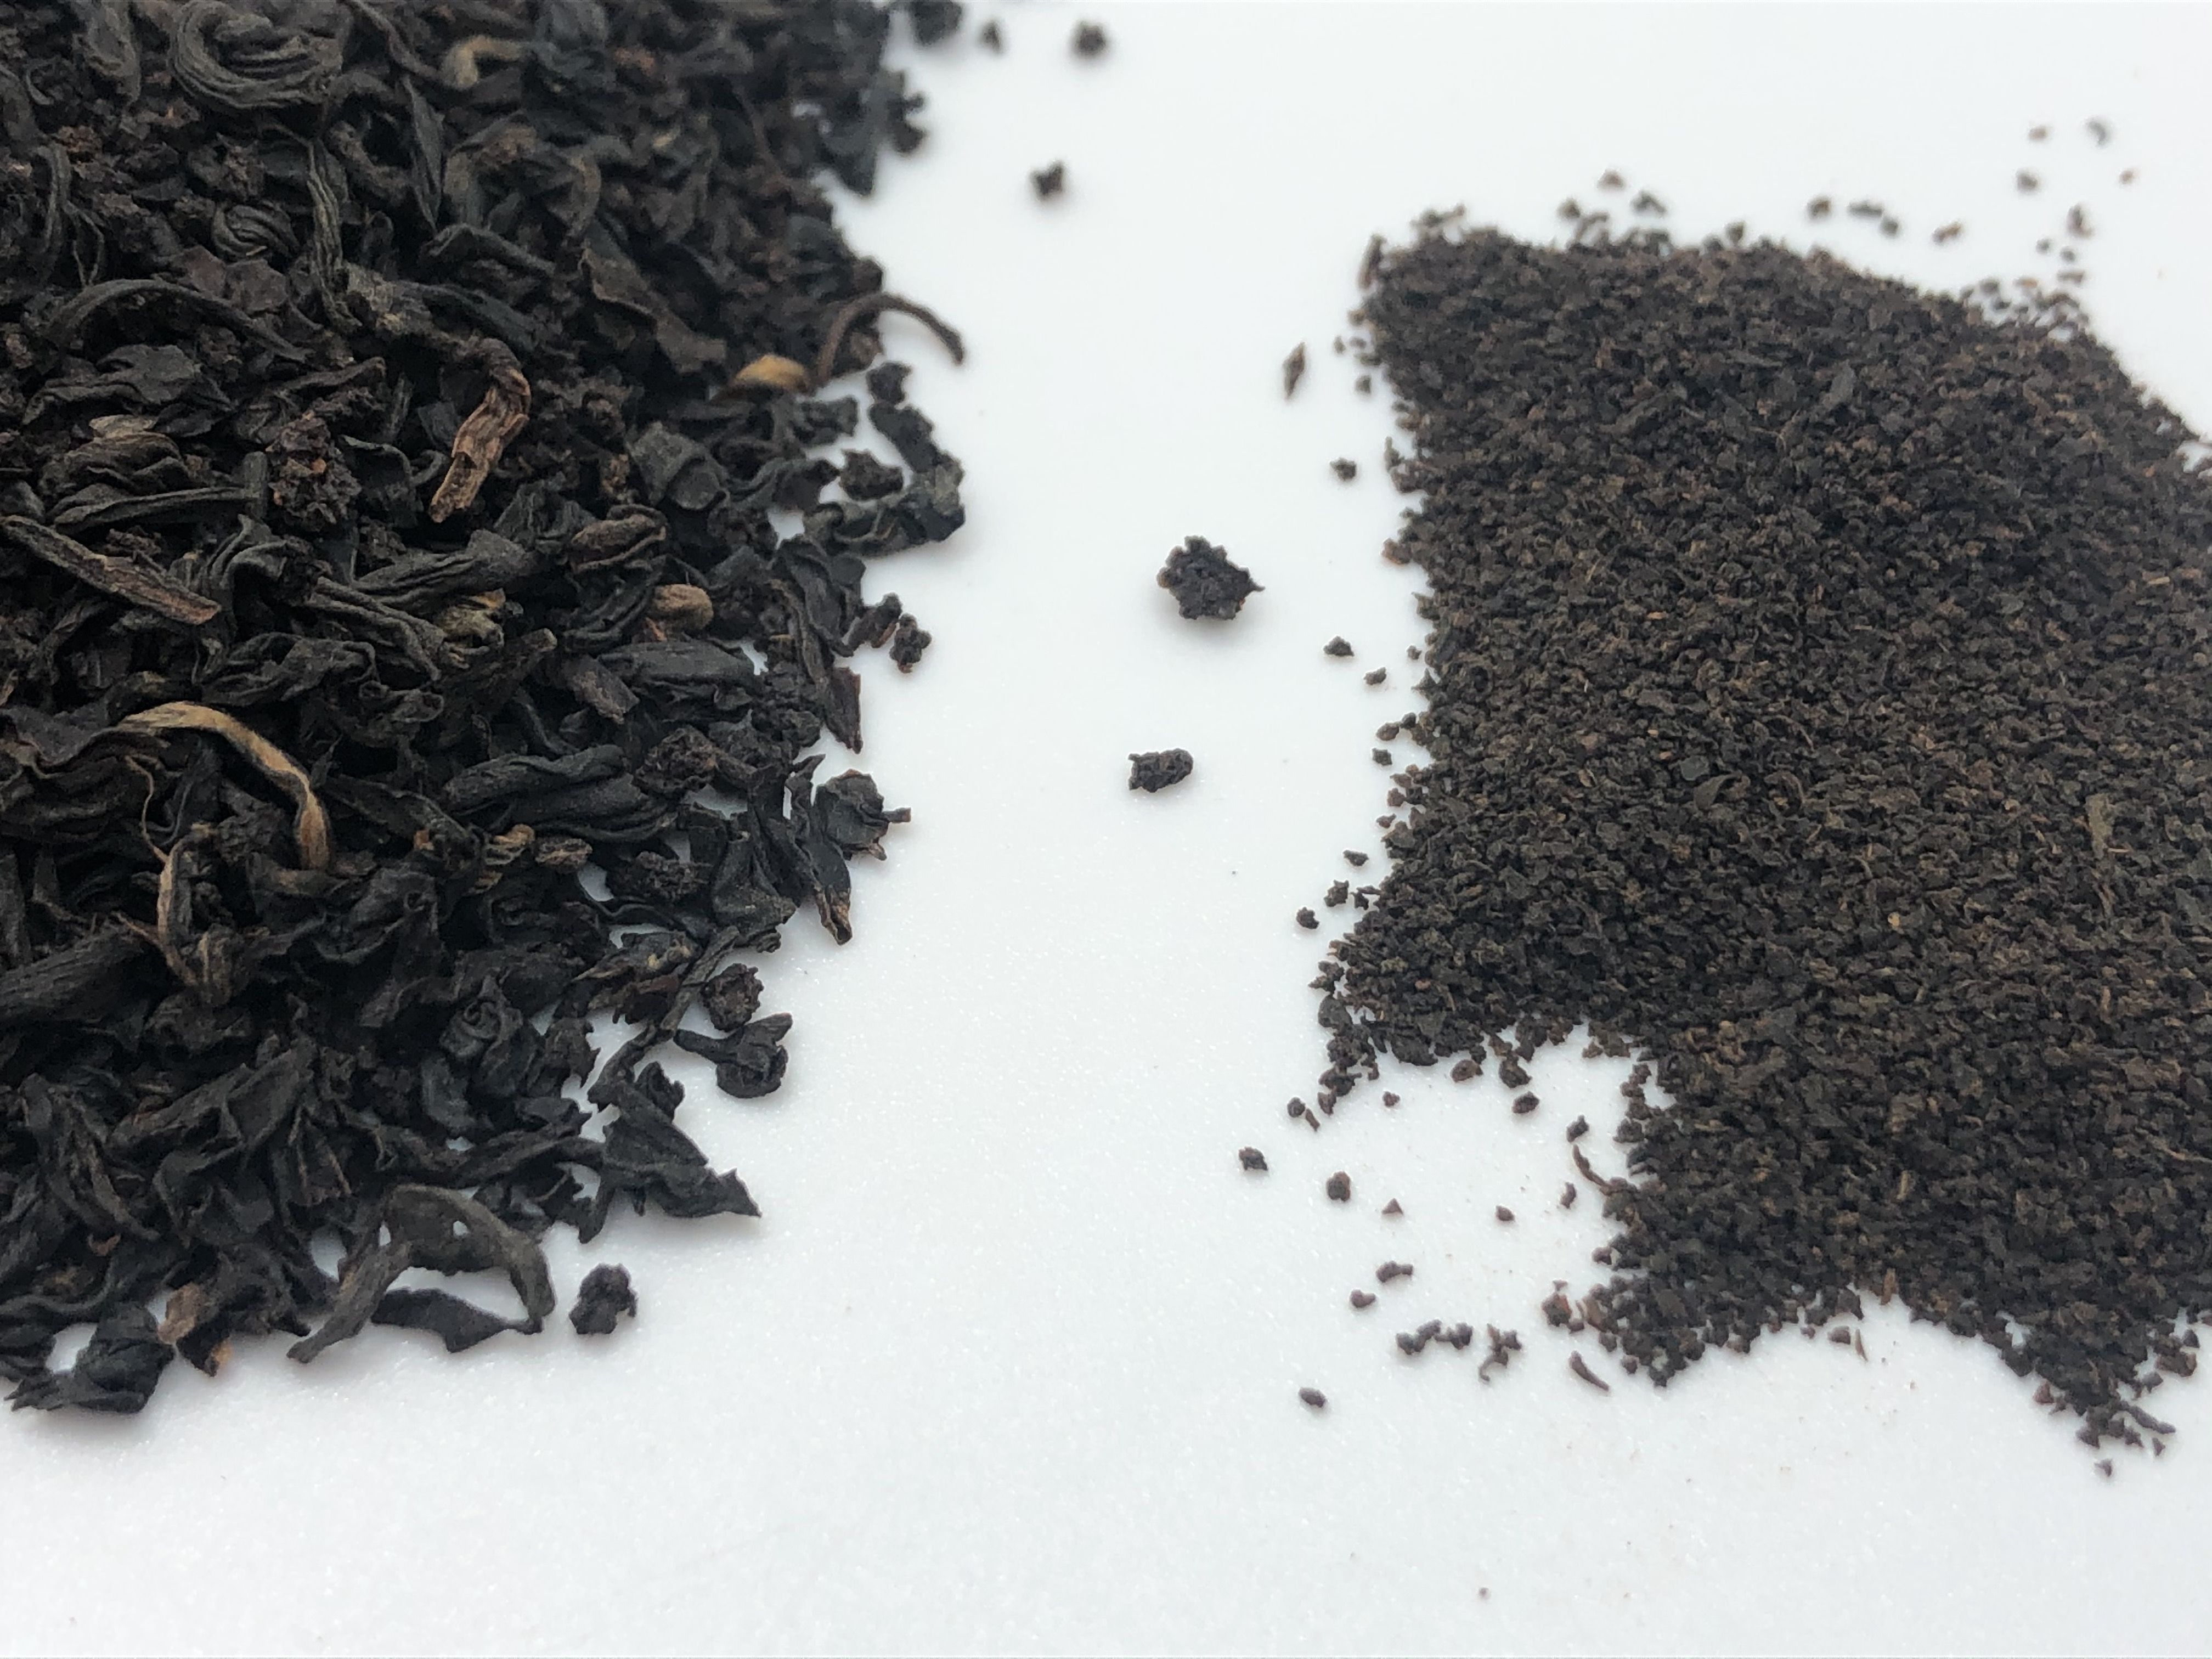 See the difference between a well know brand of tea from a supermarket versus our fabulous loose leaf tea.